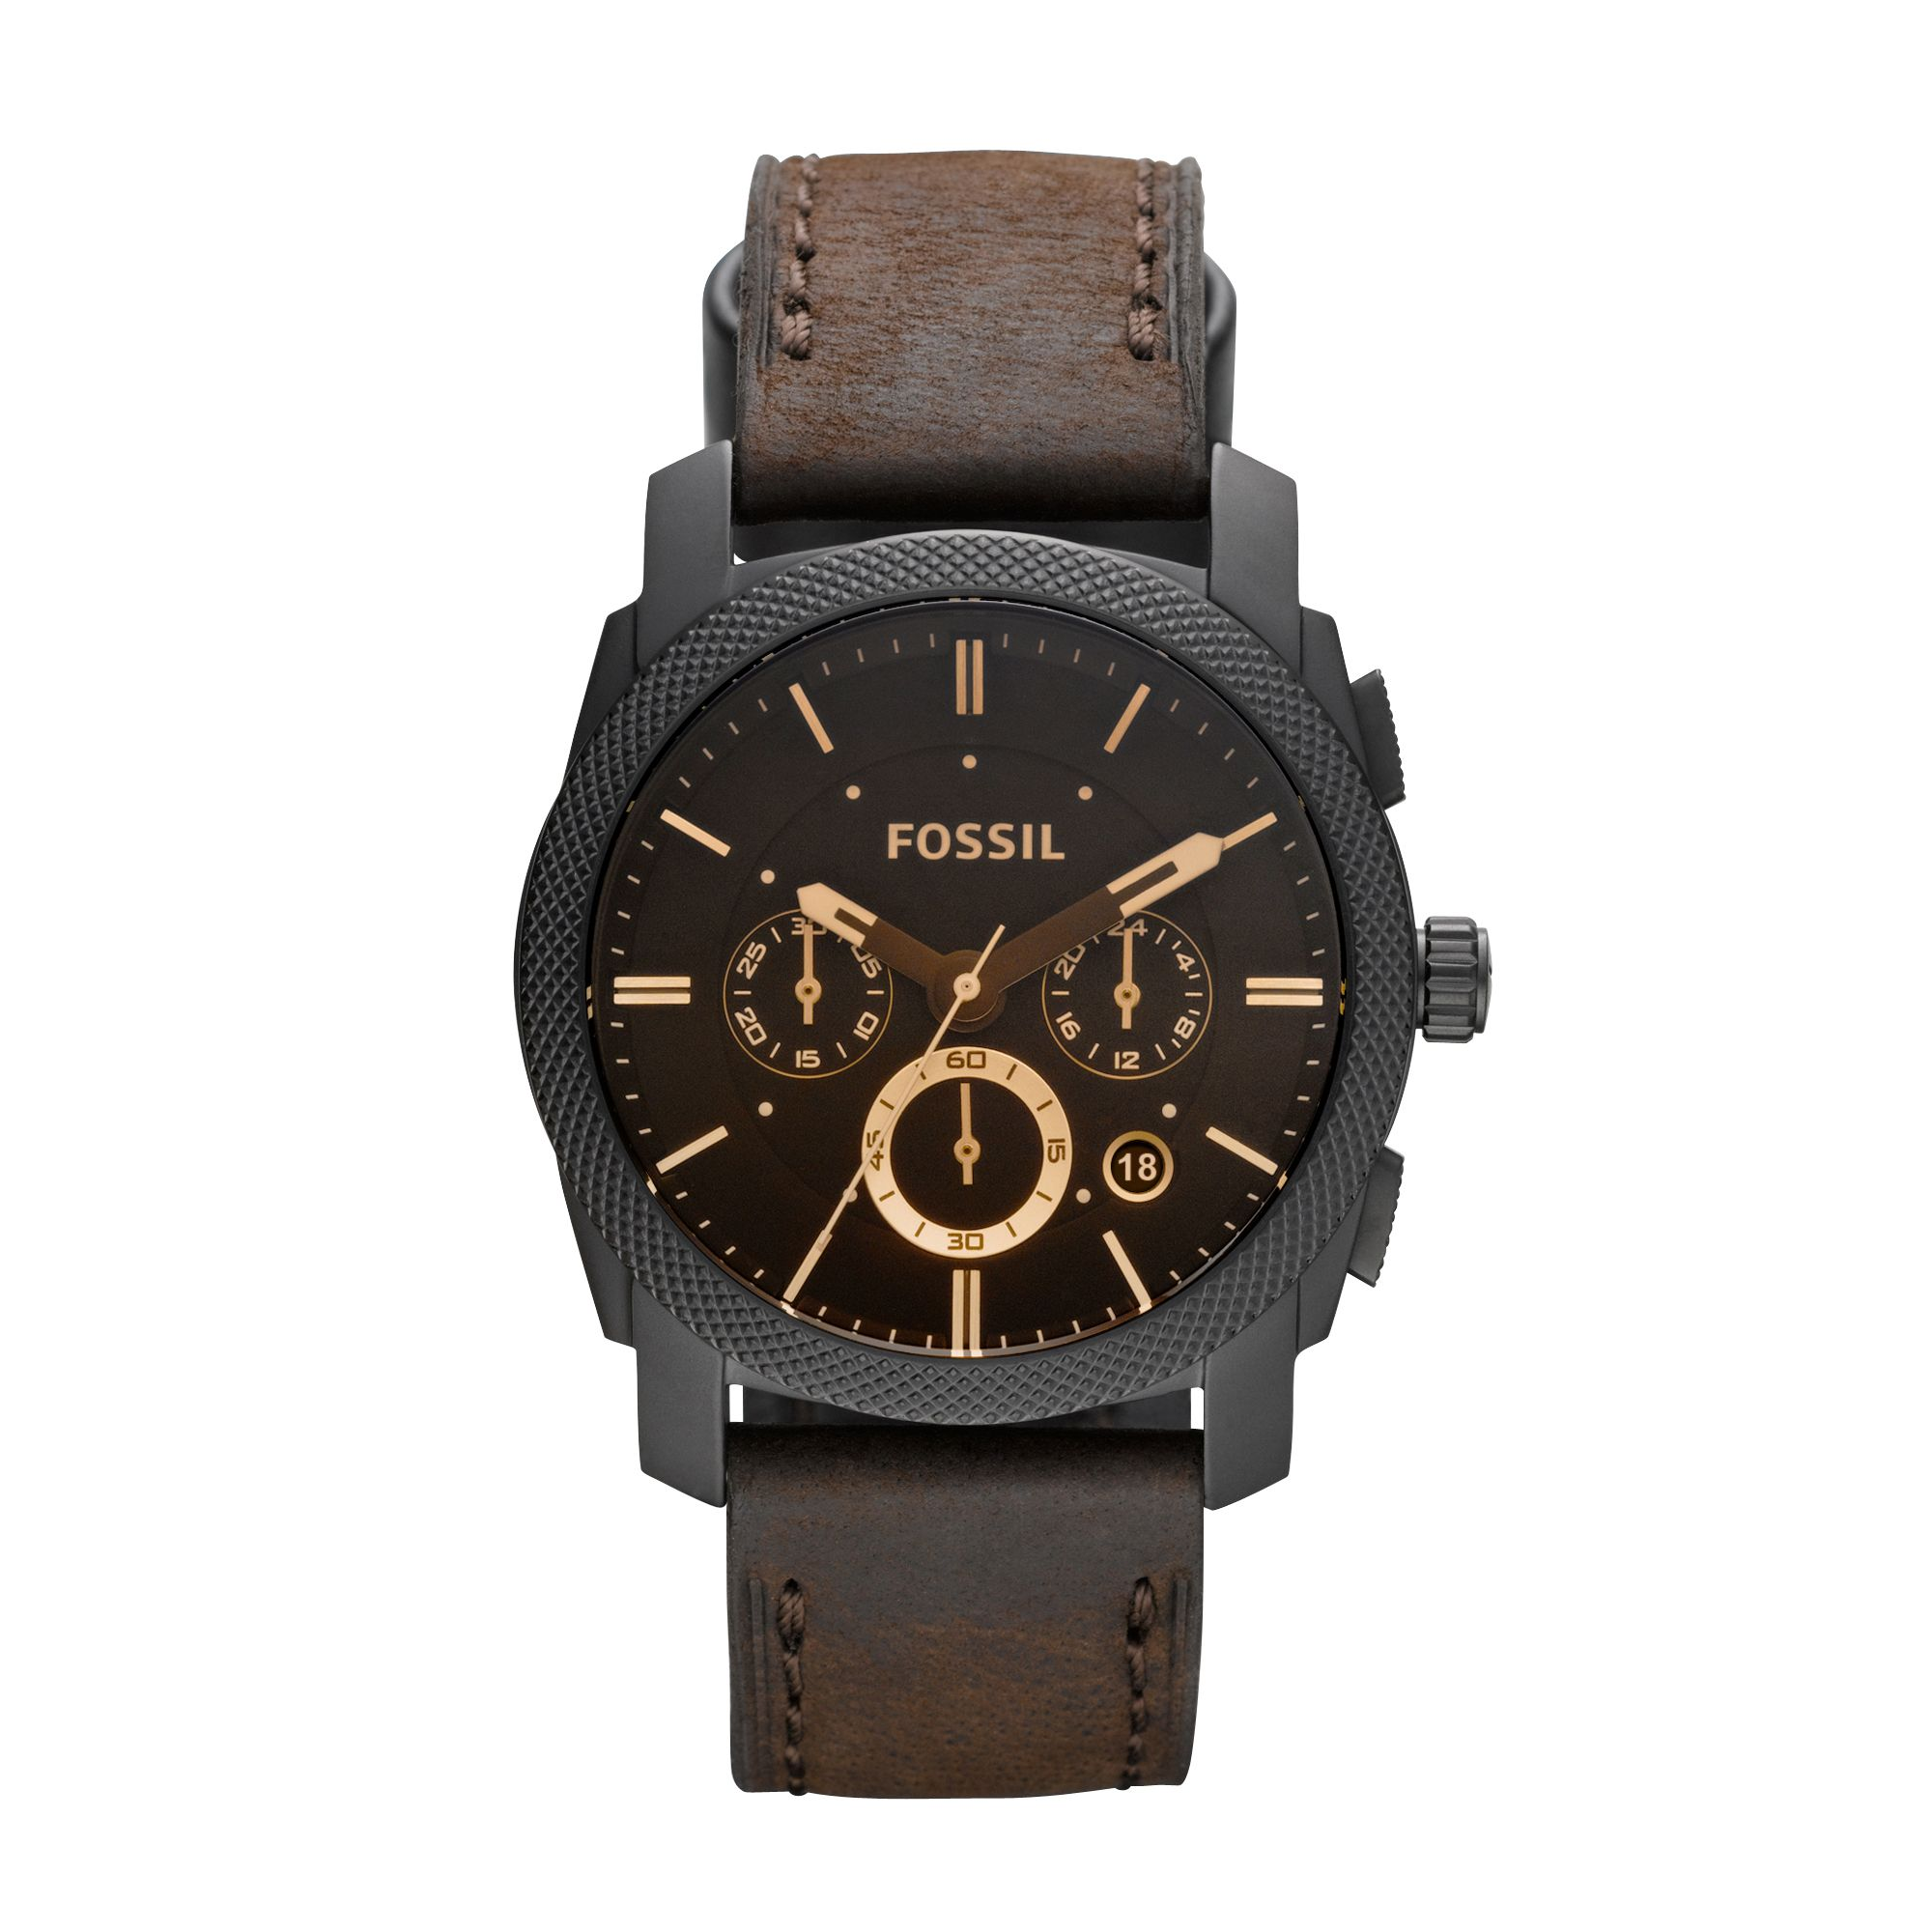 Fs4656 machine gents chronograph leather watch